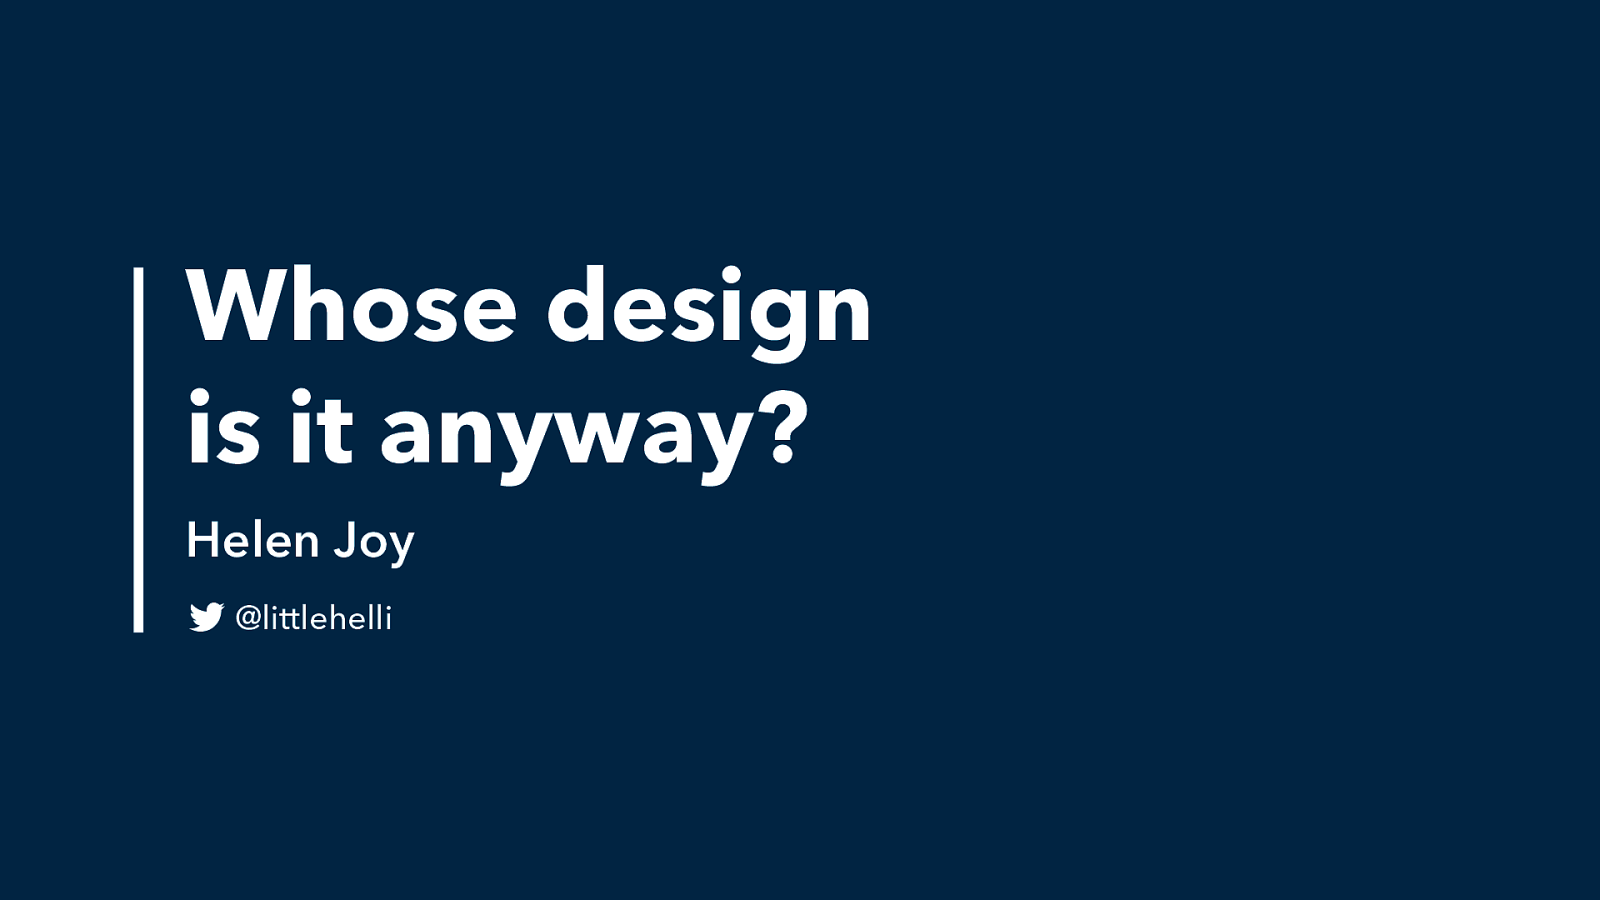 Whose Design is it Anyway?